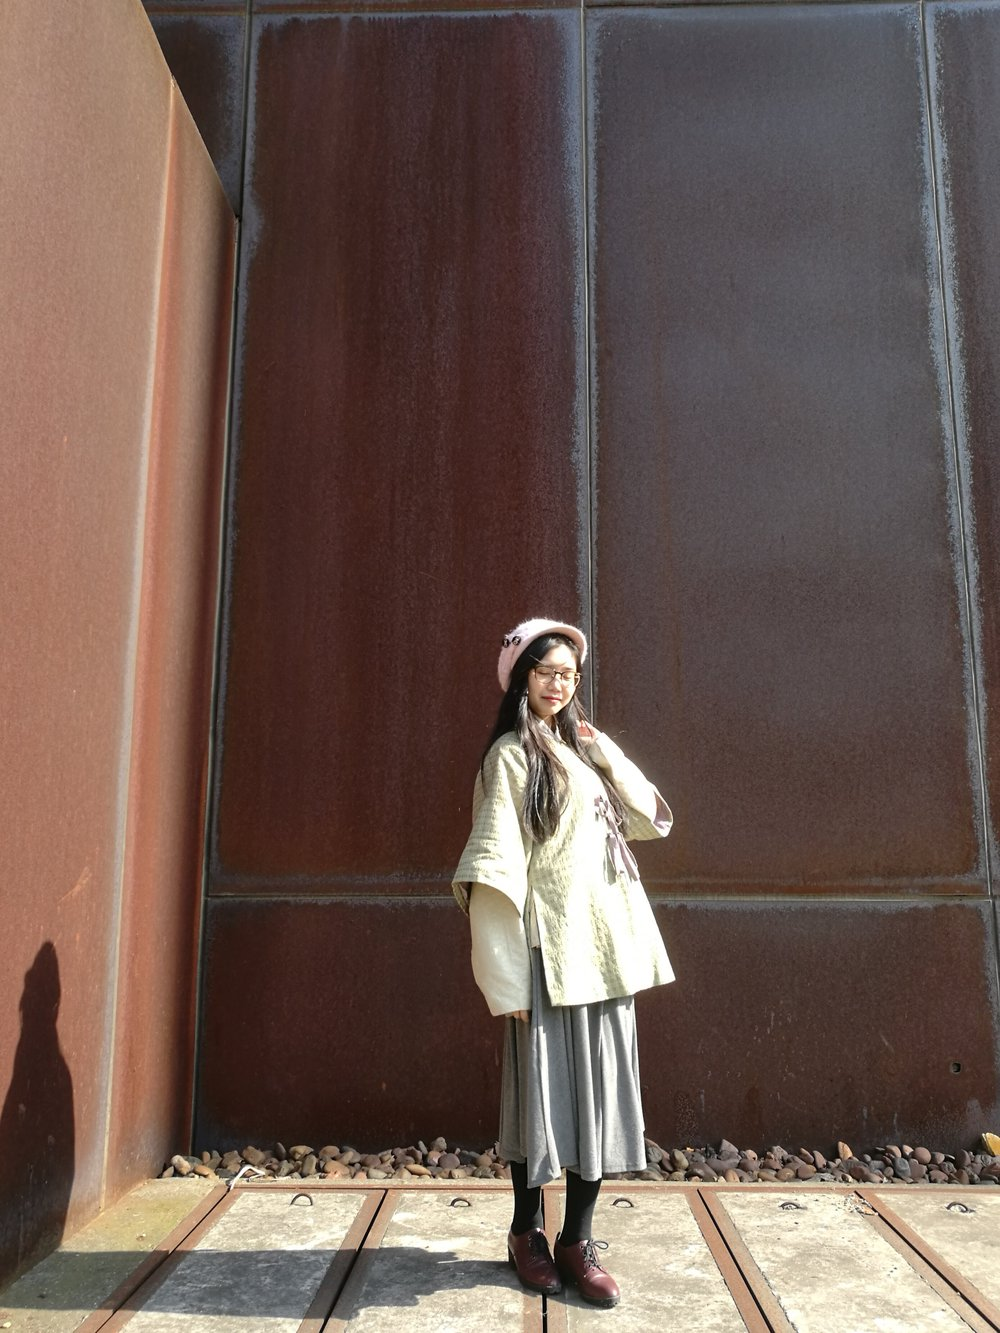 An everyday practical Ming-style hanfu outfit